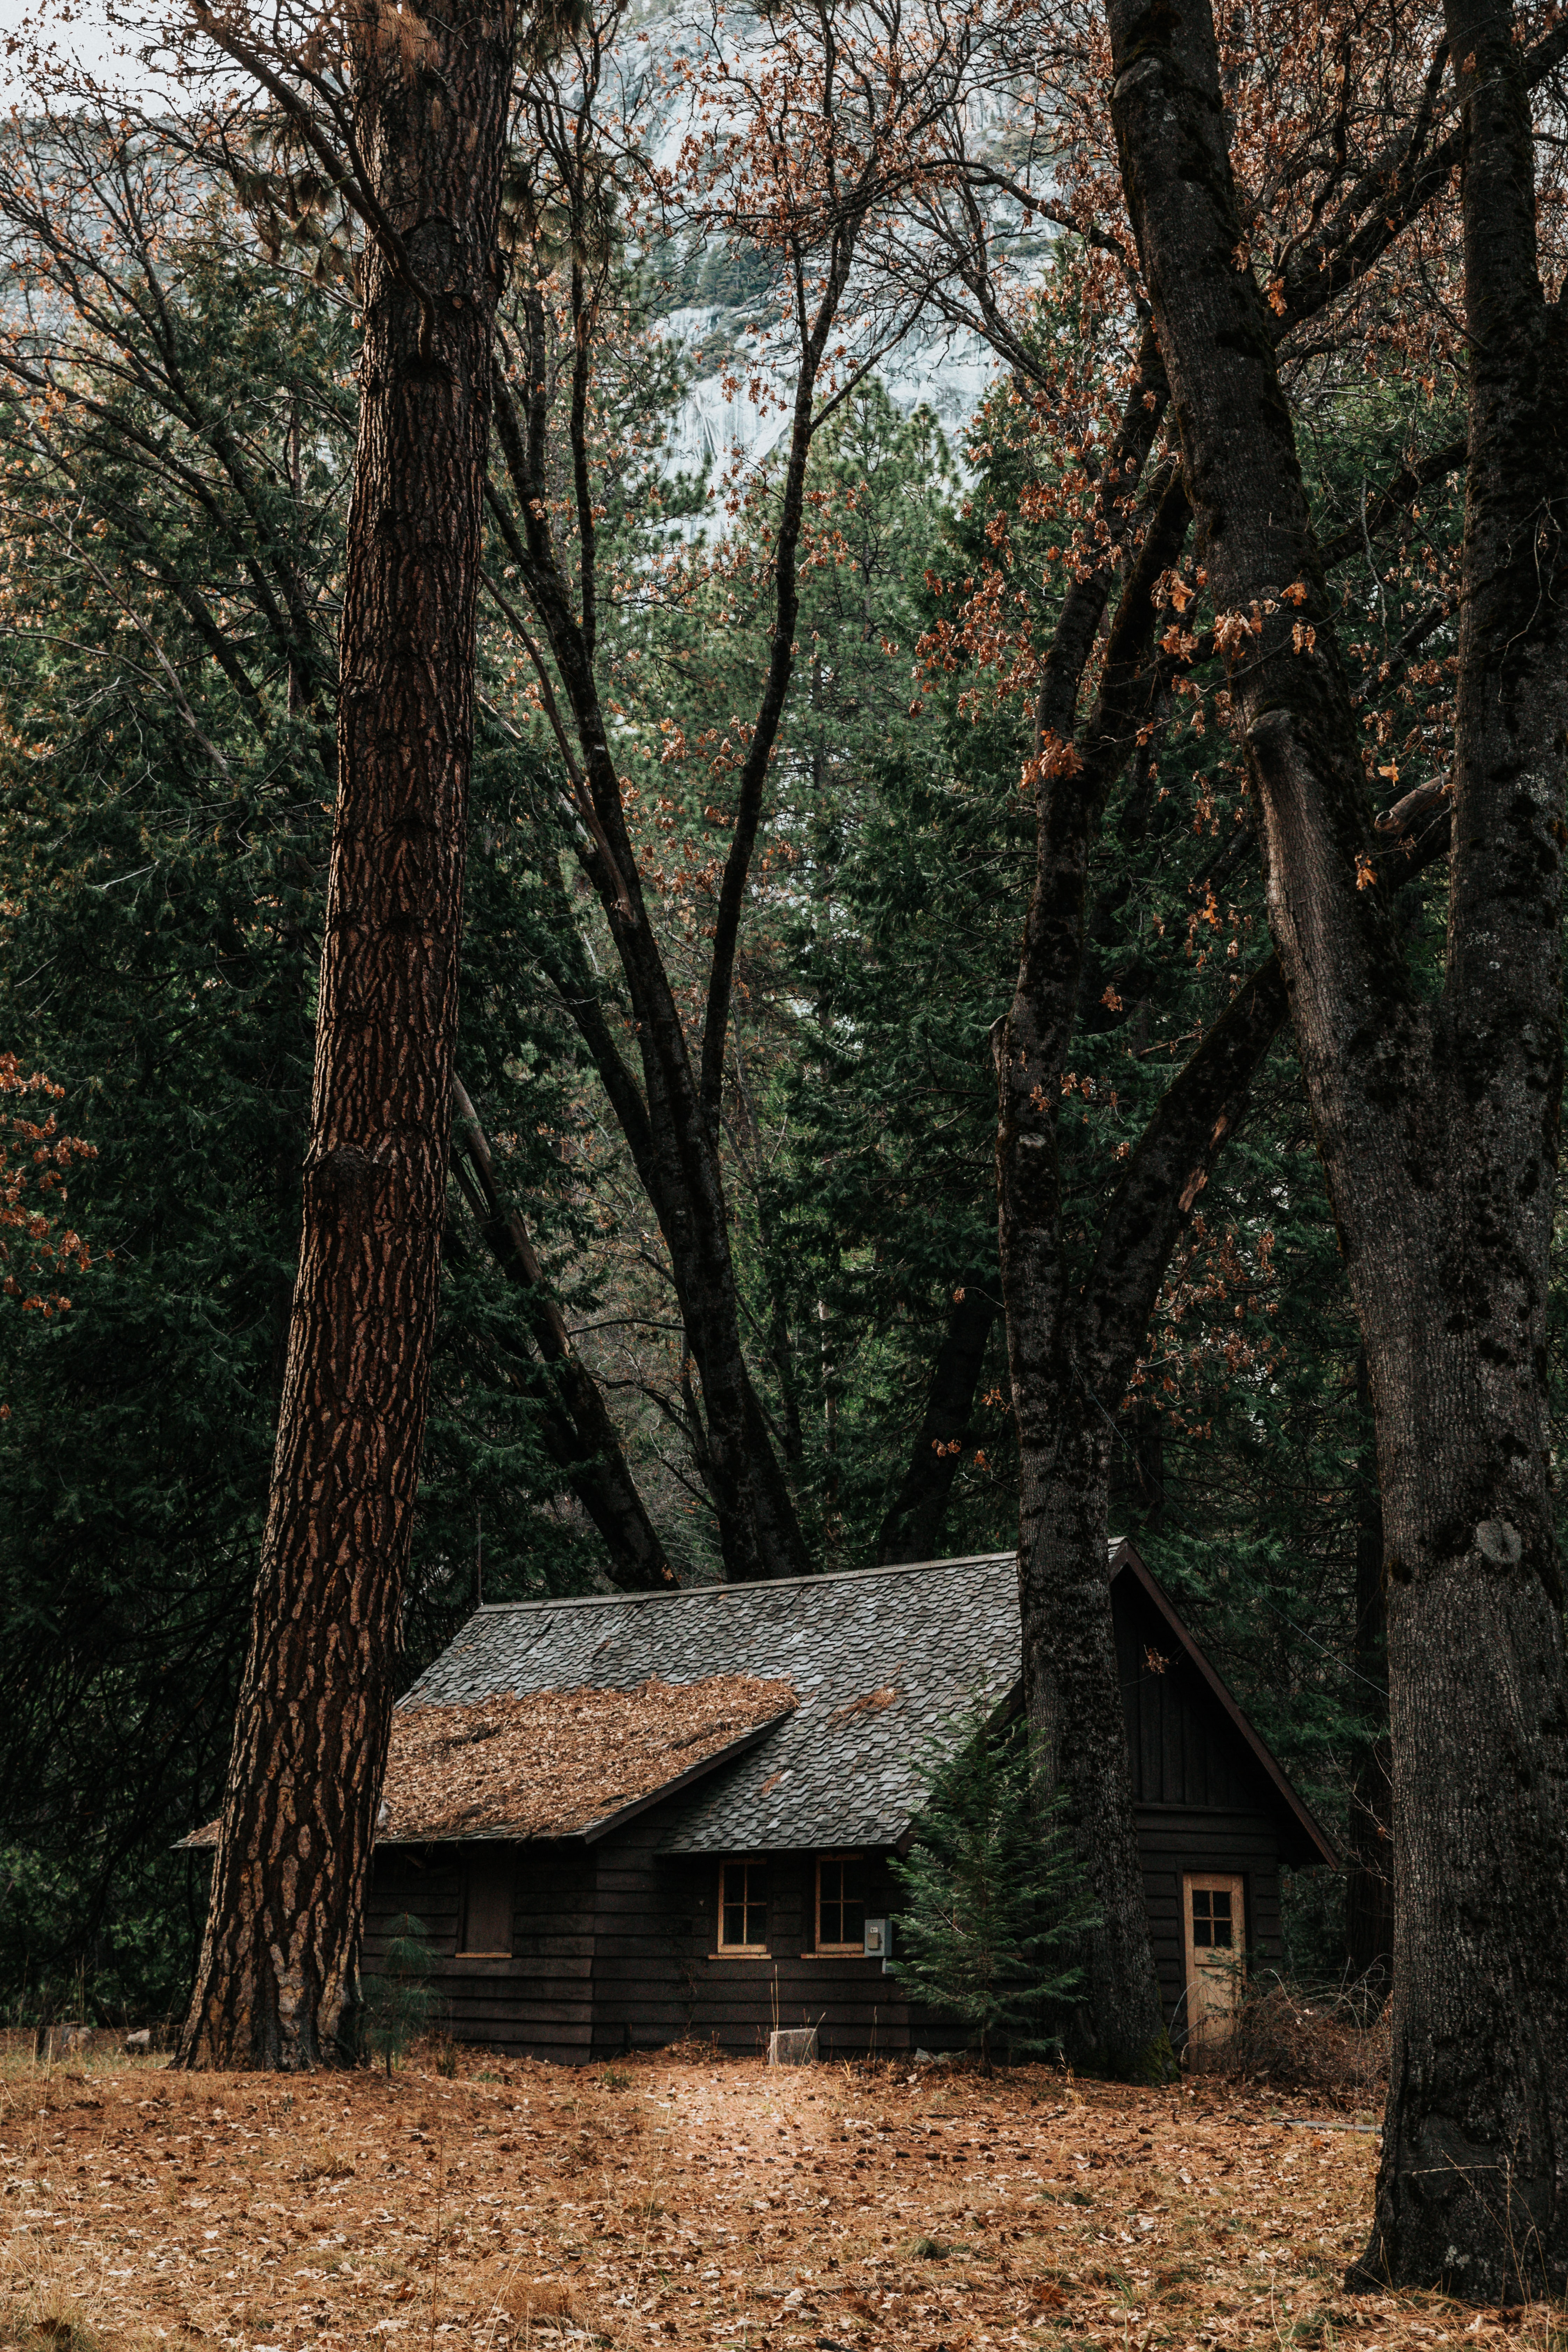 gray wooden house surrounded by trees